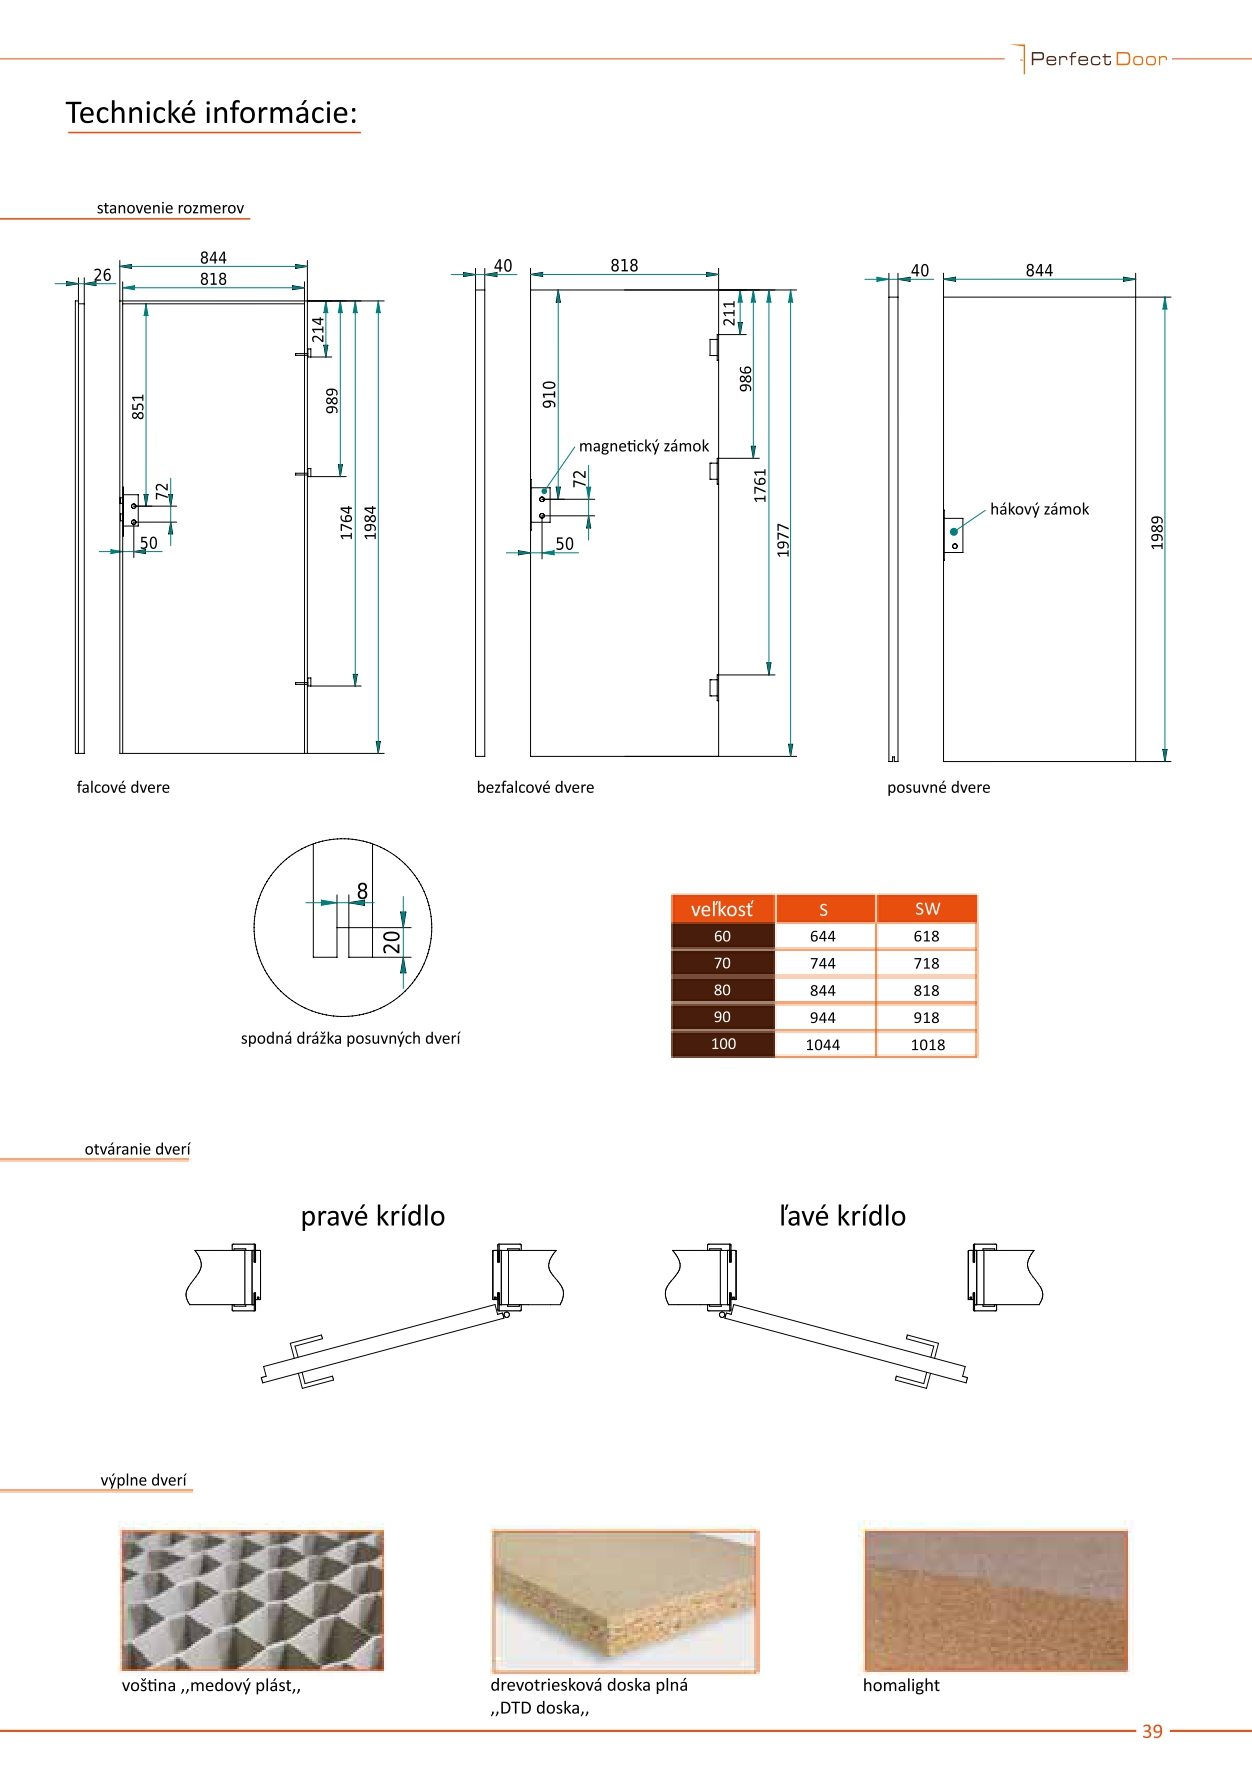 Perfectdoor katalog  1 2019 pages-to-jpg-0039